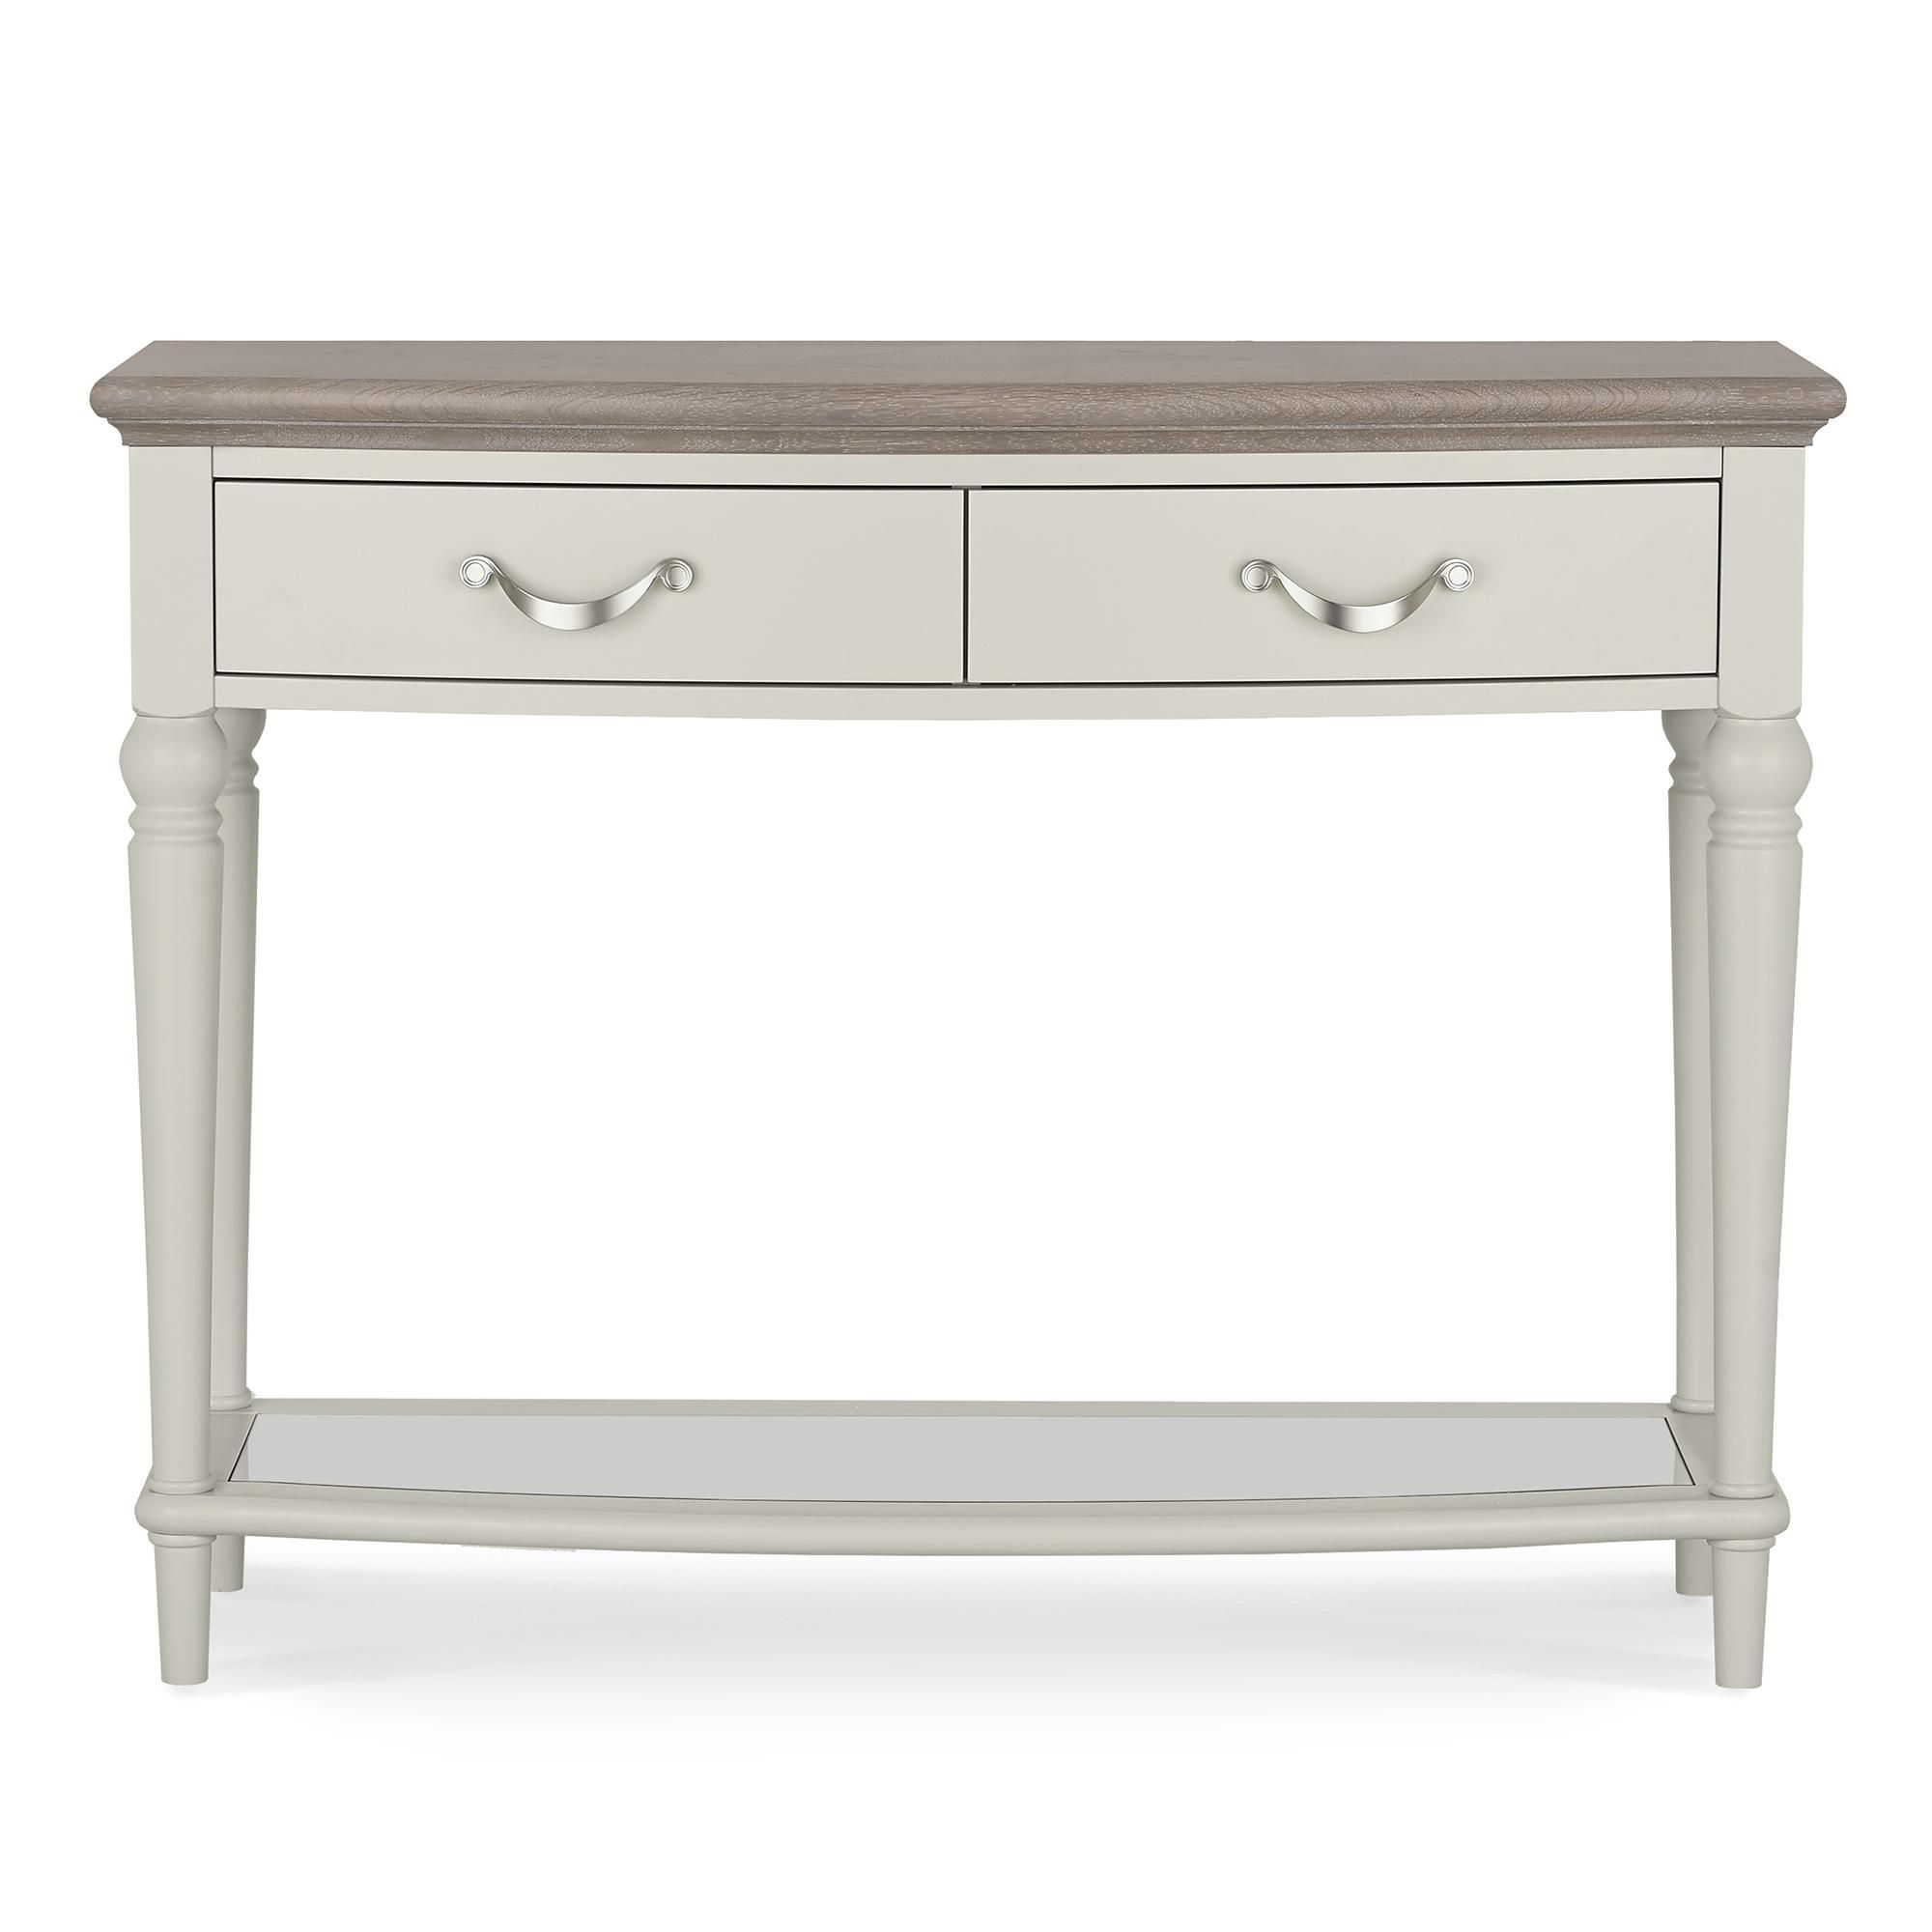 Sophia Grey Console Table In 2020 Gray Console Table Console Table Table